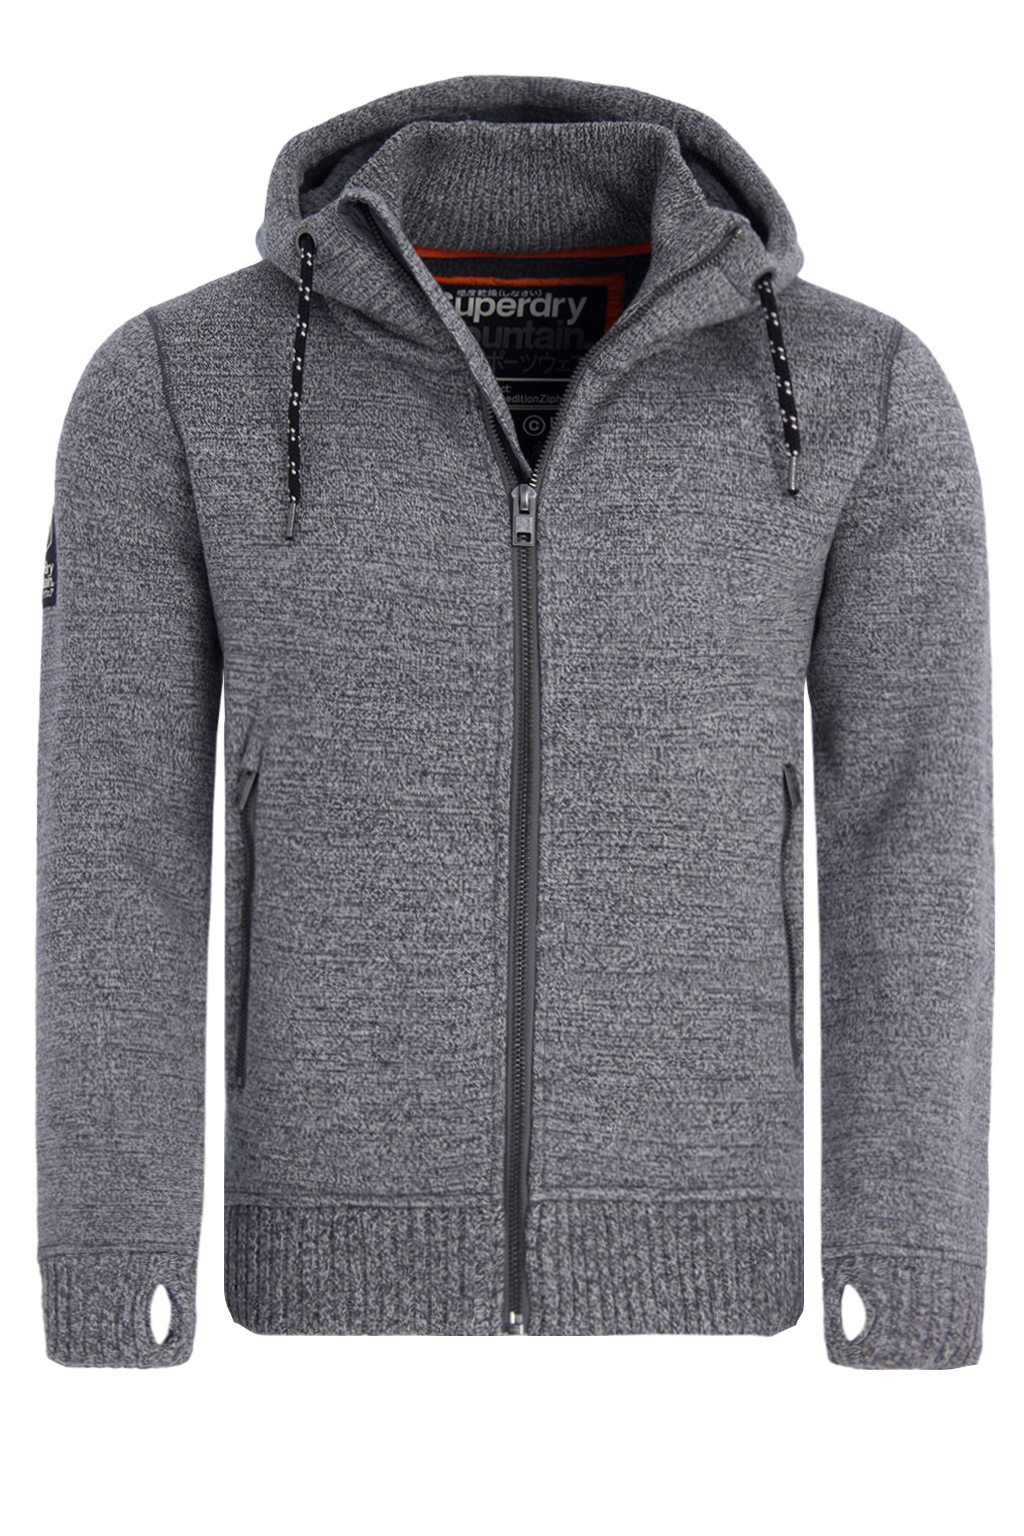 a9ddd1c1d37c SUPERDRY EXPEDITION ZIPHOODIE ΑΝΔΡΙΚΟ M20001MP-MID GREY TWIST (MID GREY  TWIST)